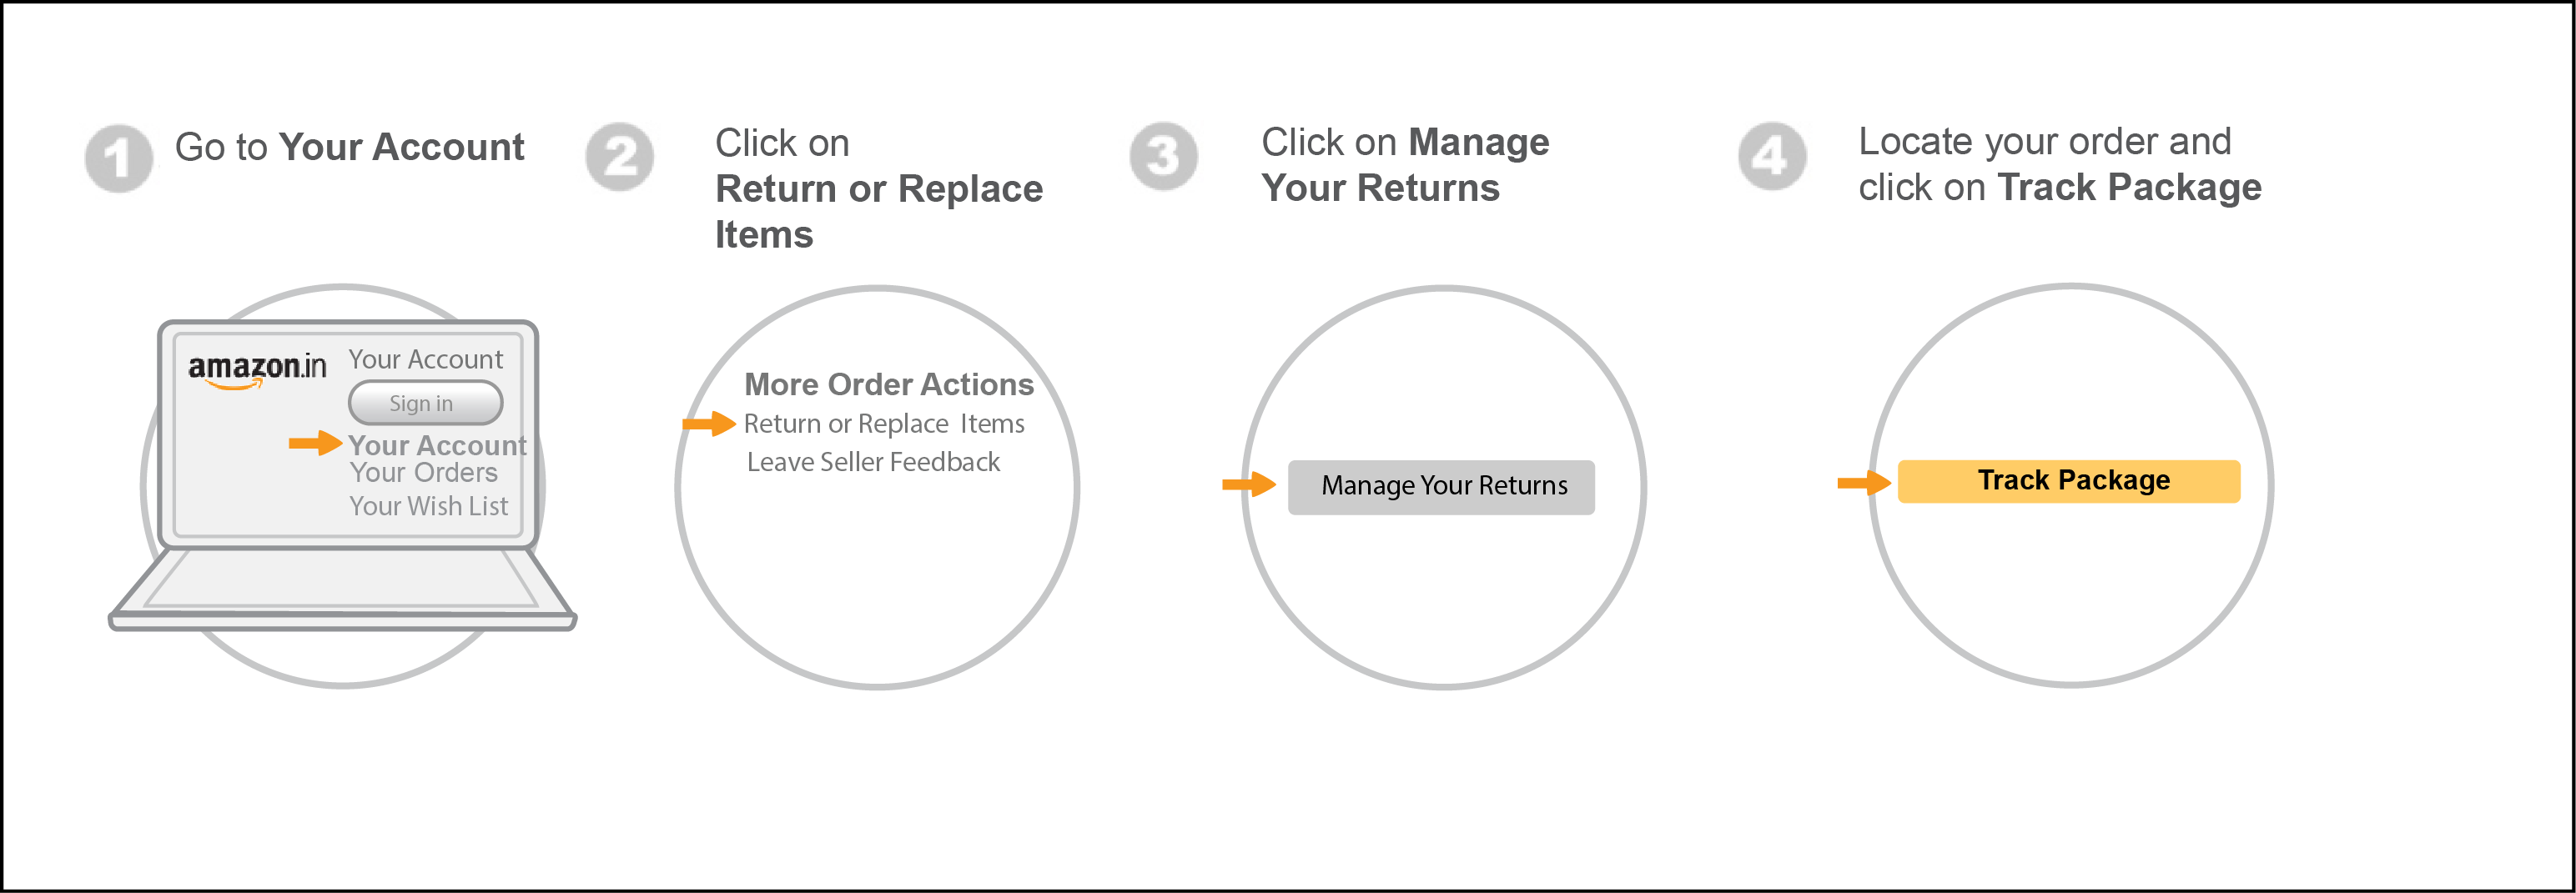 Amazon.in Help: Track Your Return